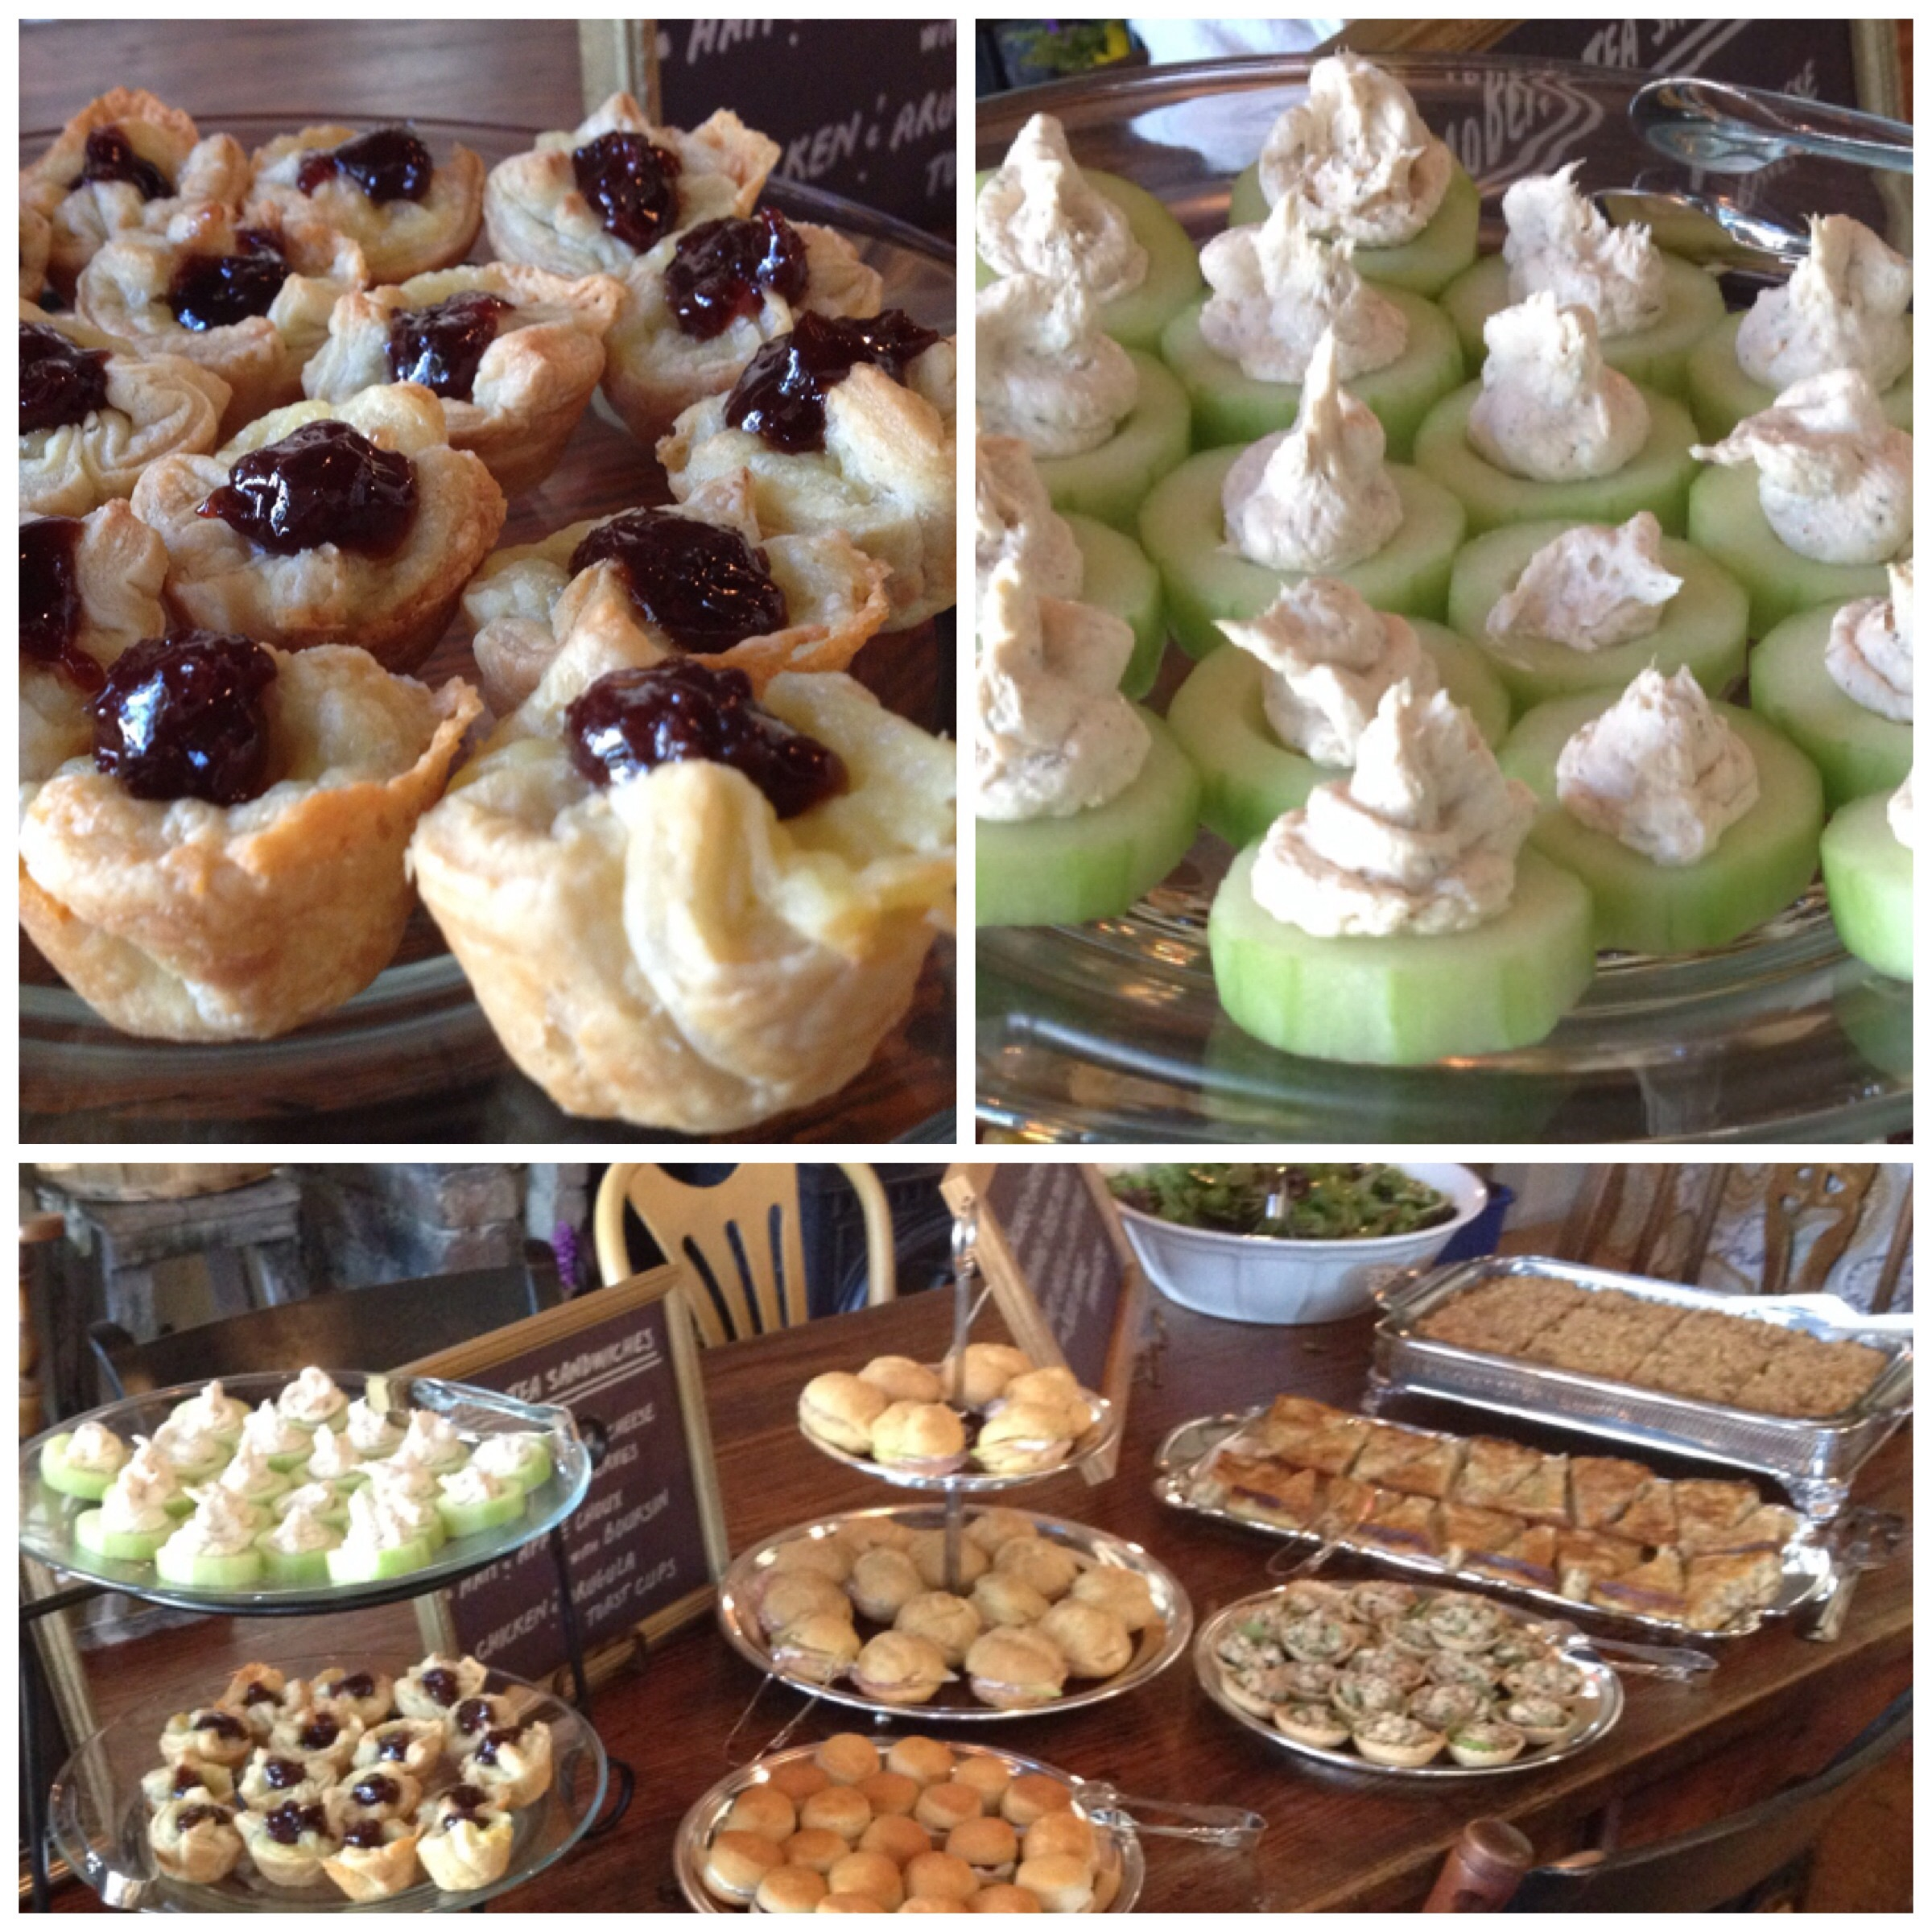 artisanal cheese and fruit display finger foods at harry potter themed bridal shower brunch